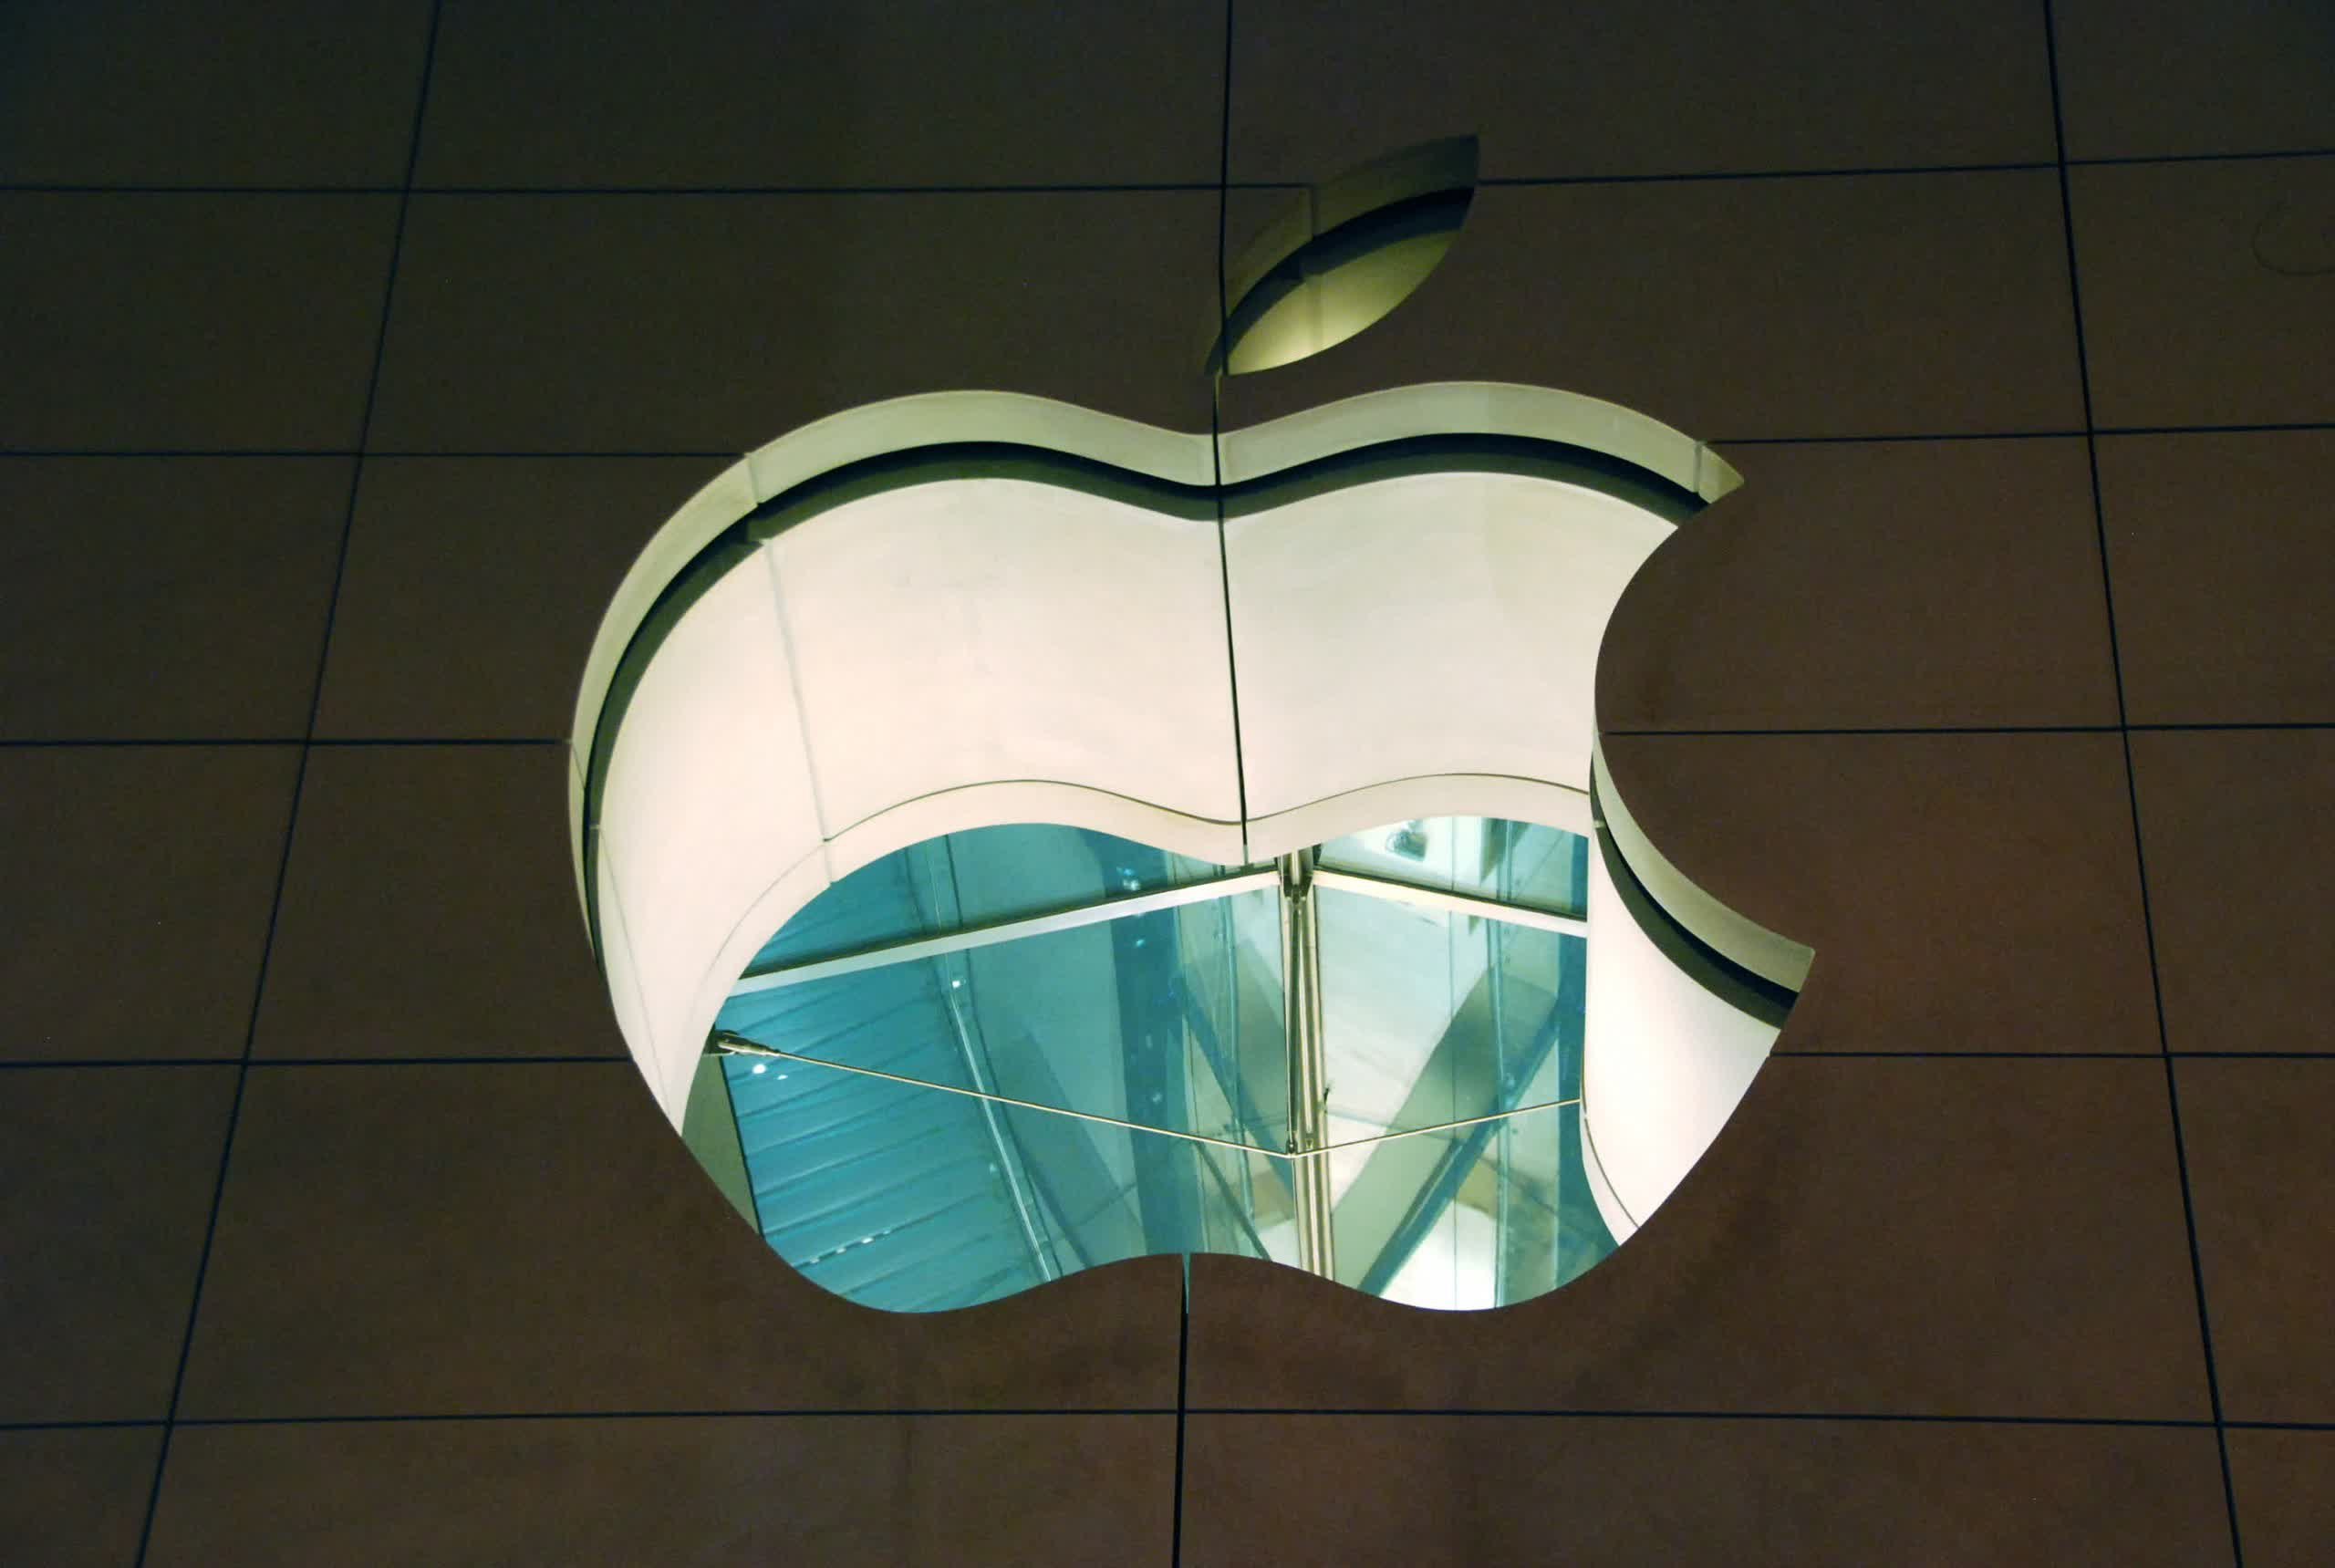 Jury orders Apple to pay $300 million in patent infringement case thumbnail